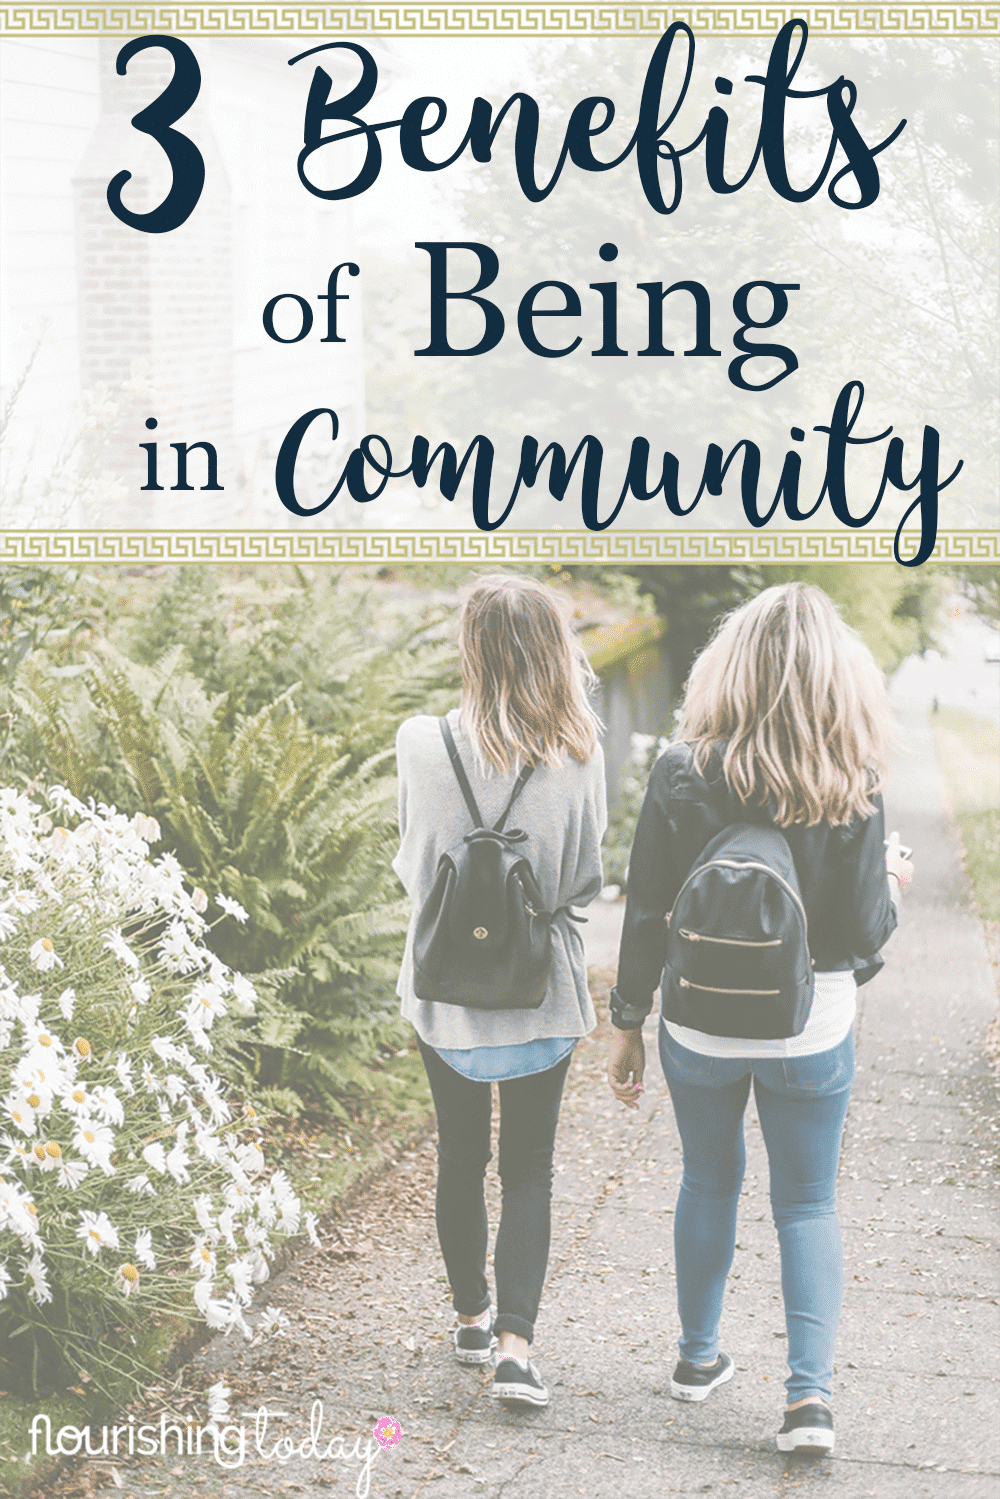 Are you part of a community? Community can be a lifeline in times of struggle. Join us for a new community & 3 Important Benefits of Being in Community!